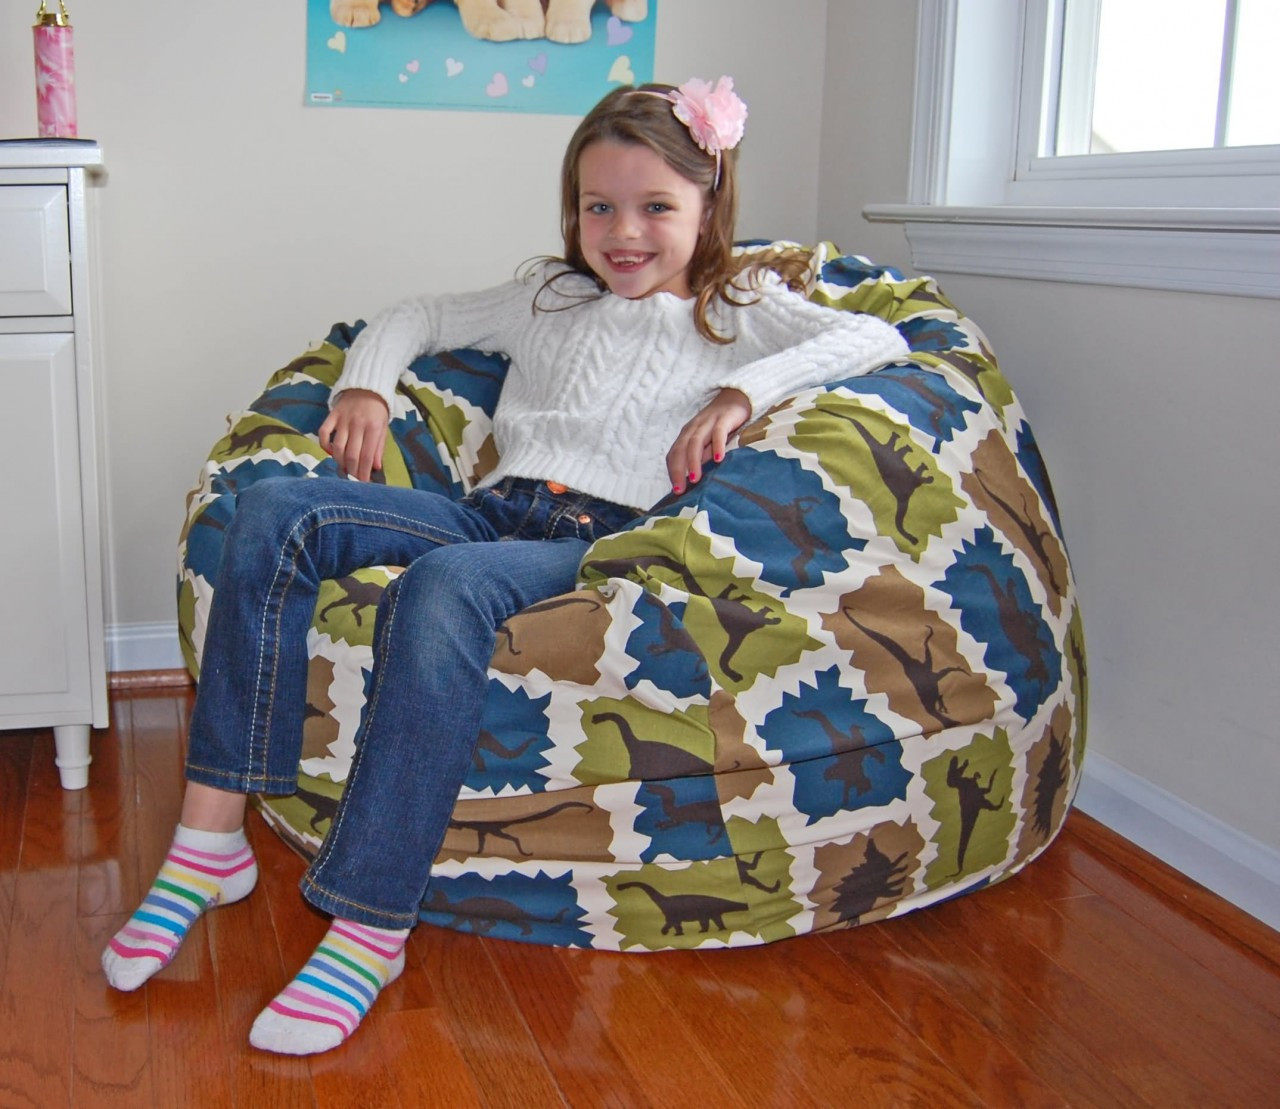 buy bean bag chair diy cushions washable dinosaurs cotton chairs for kids